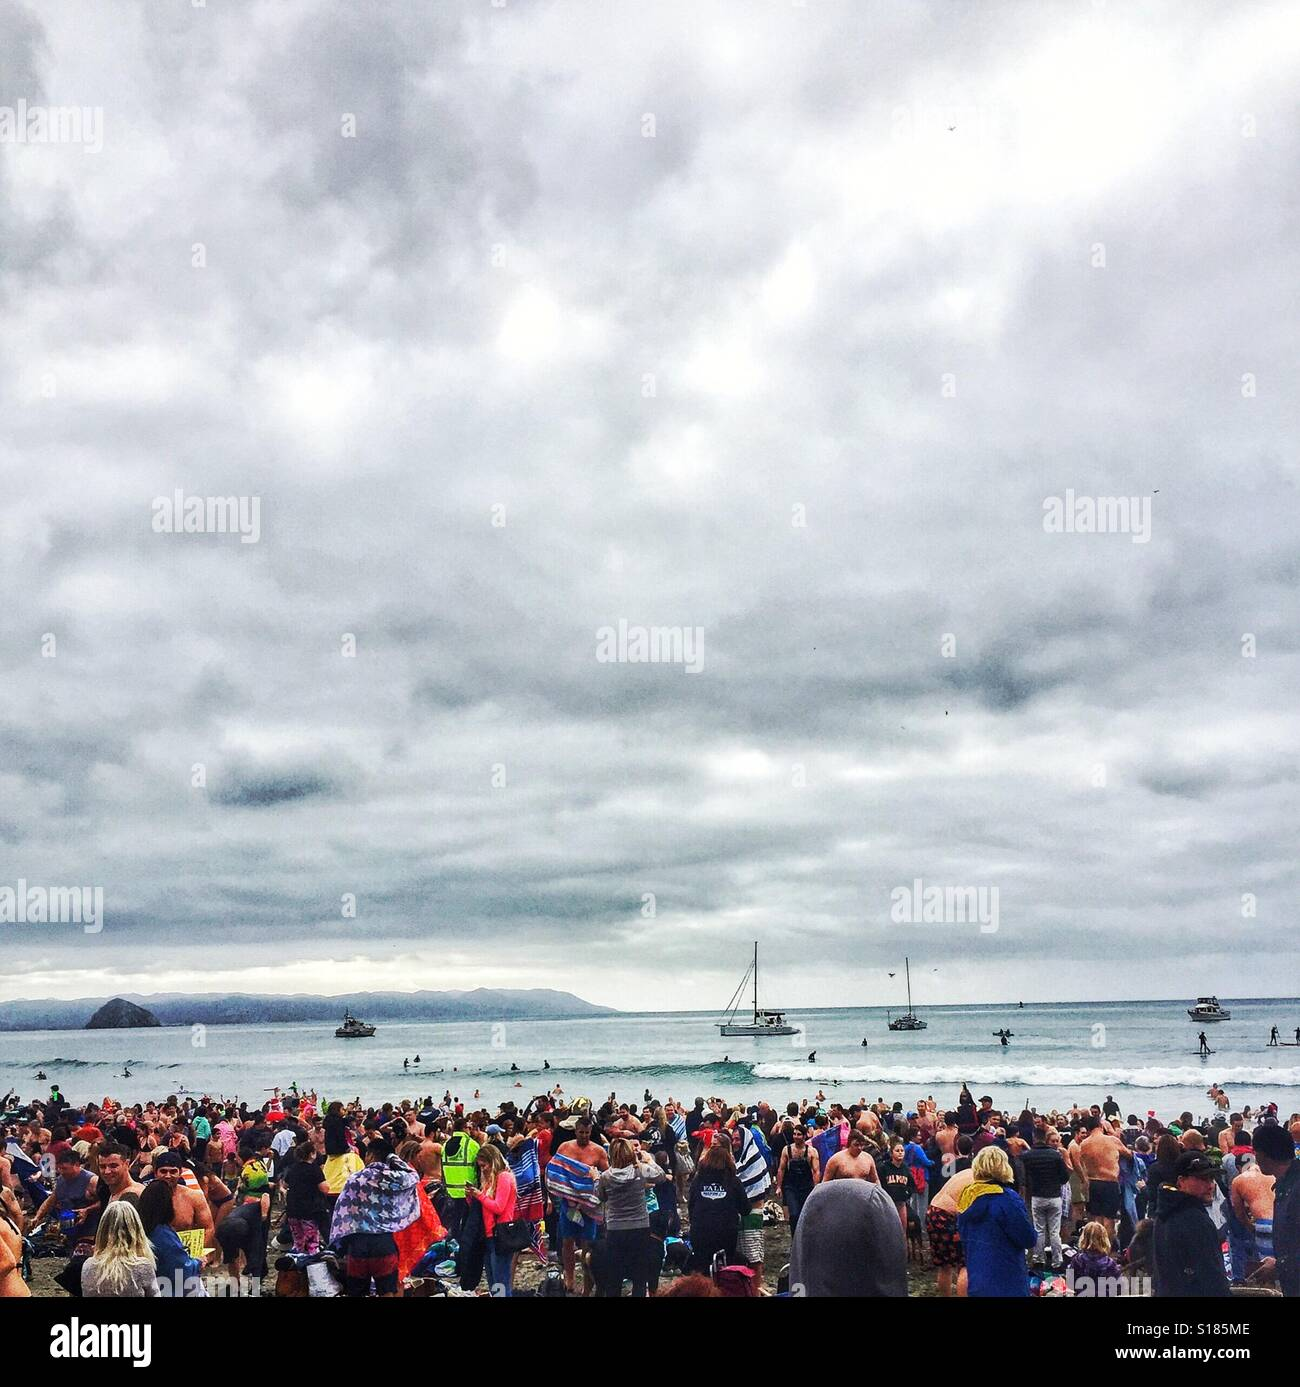 Polar Bear Plunge in Cayucos California...New Year's day 2017...coldest water temperatures on record...down - Stock Image